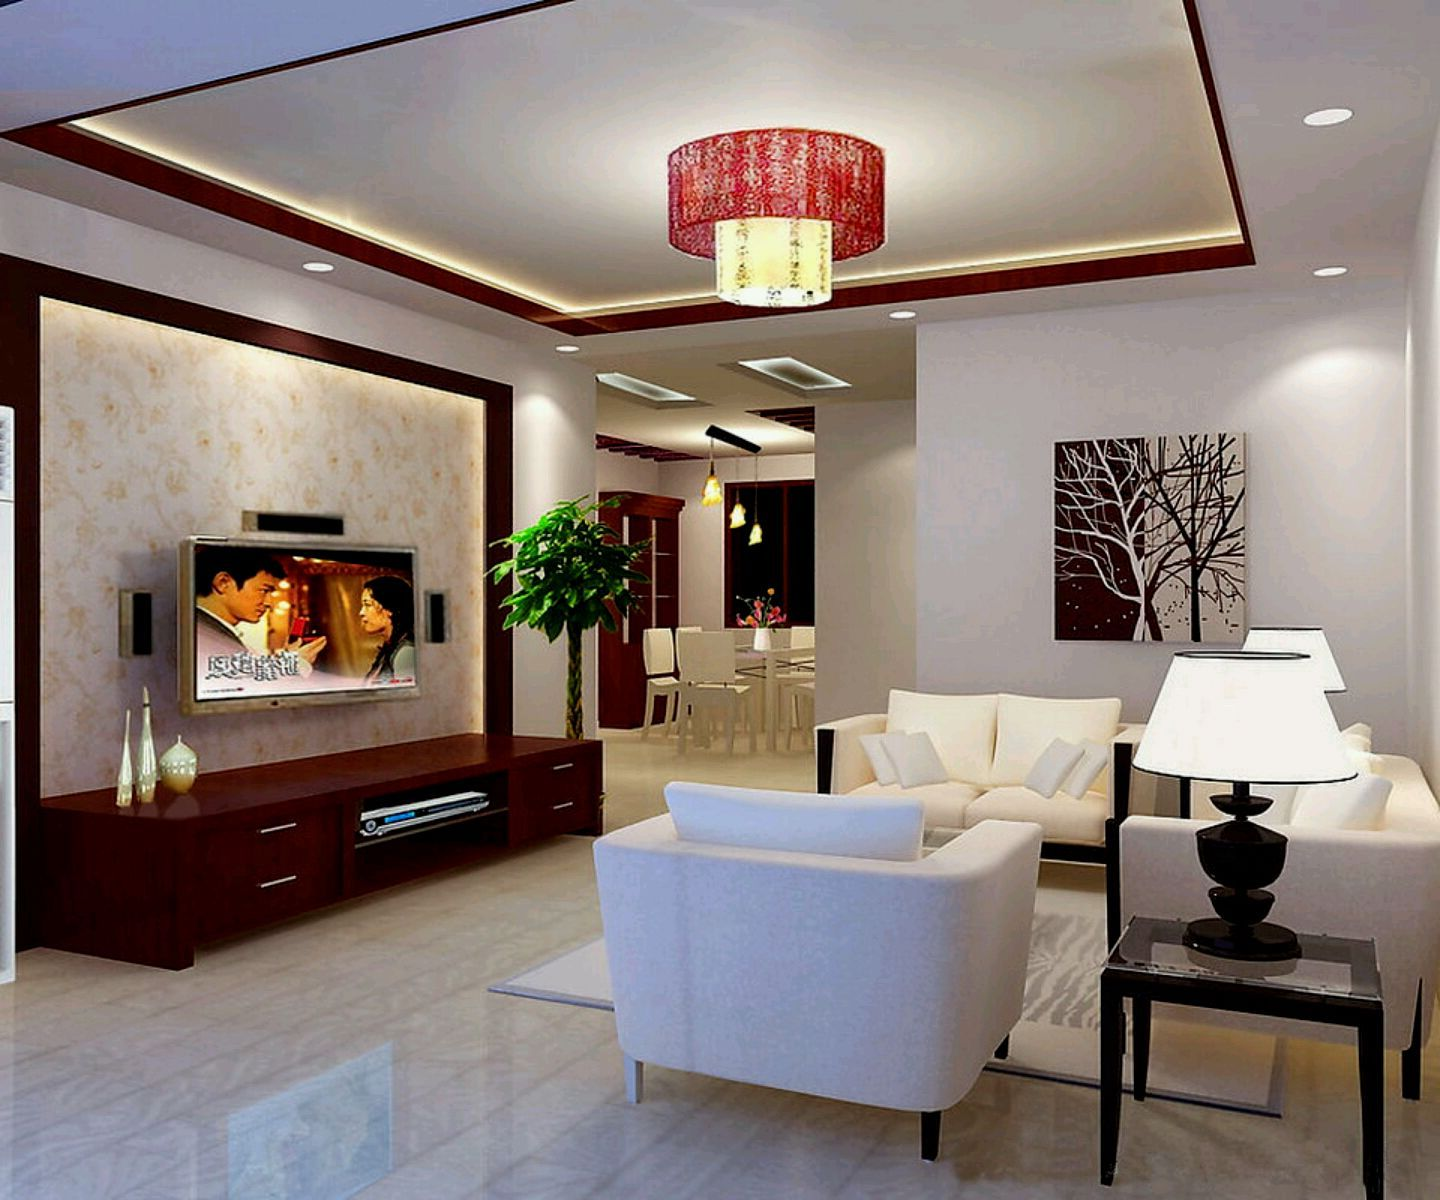 Home Ceiling Design Ideas: Pin By Adil Taj On Ceiling In 2019